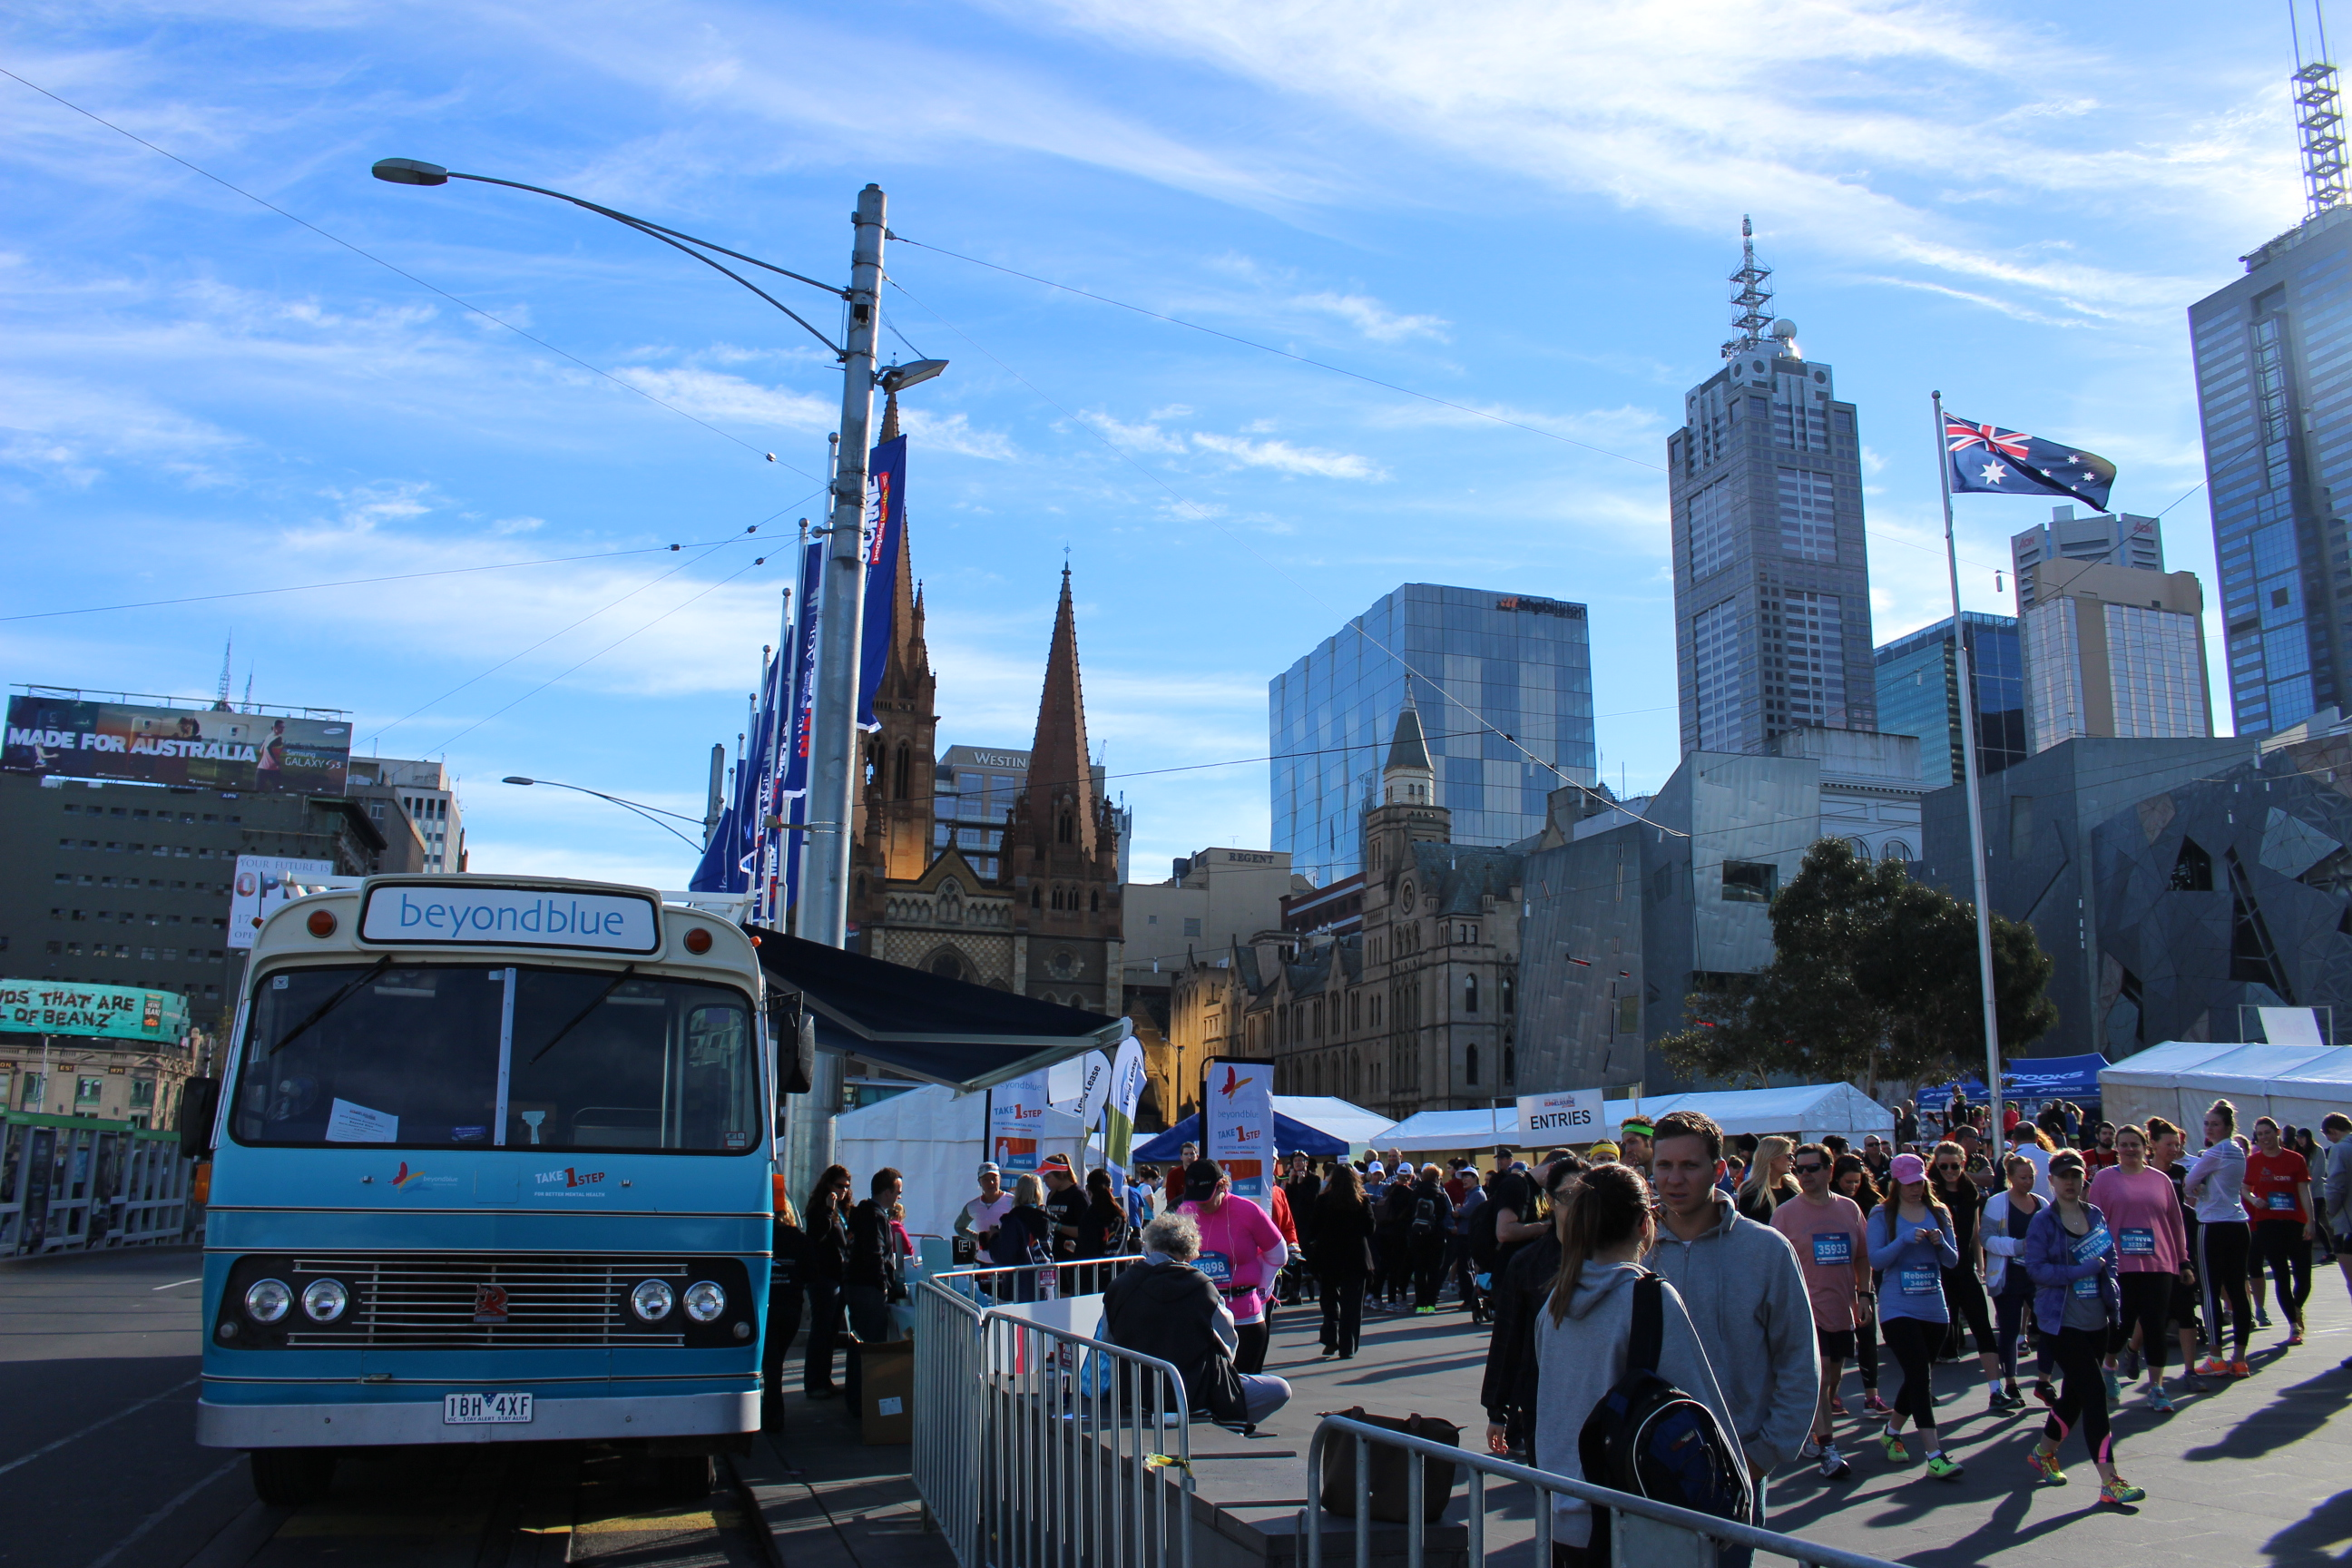 The big blue bus greeted a large crowd at Federation Square.